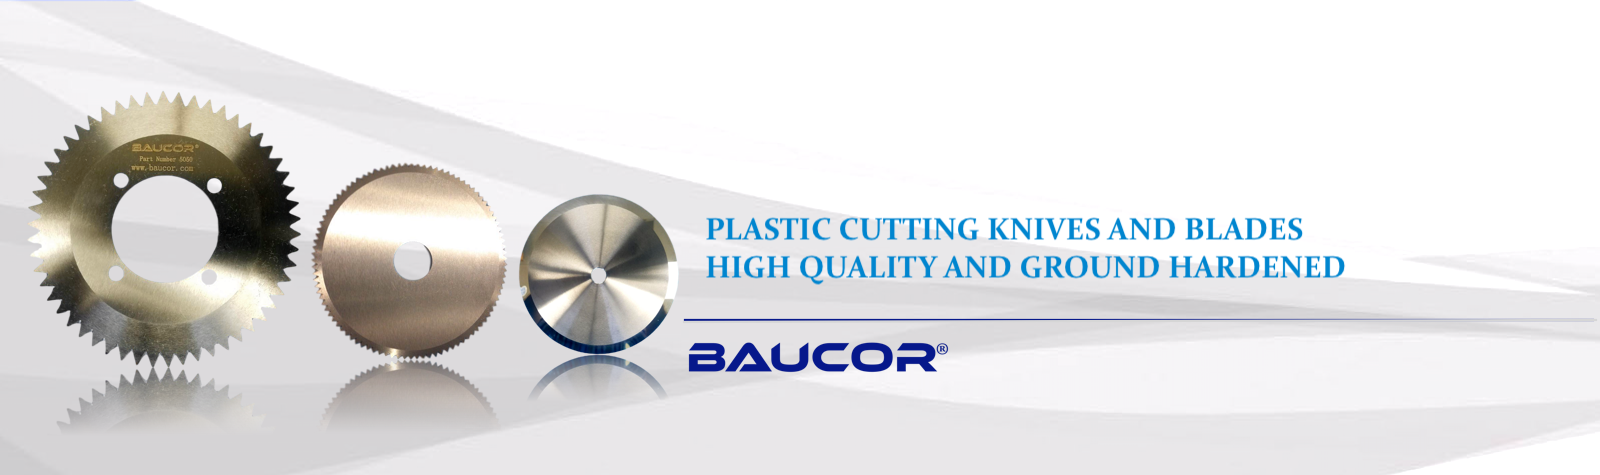 Plastic Cutting Knives | Baucor - Manufacturer of Industrial